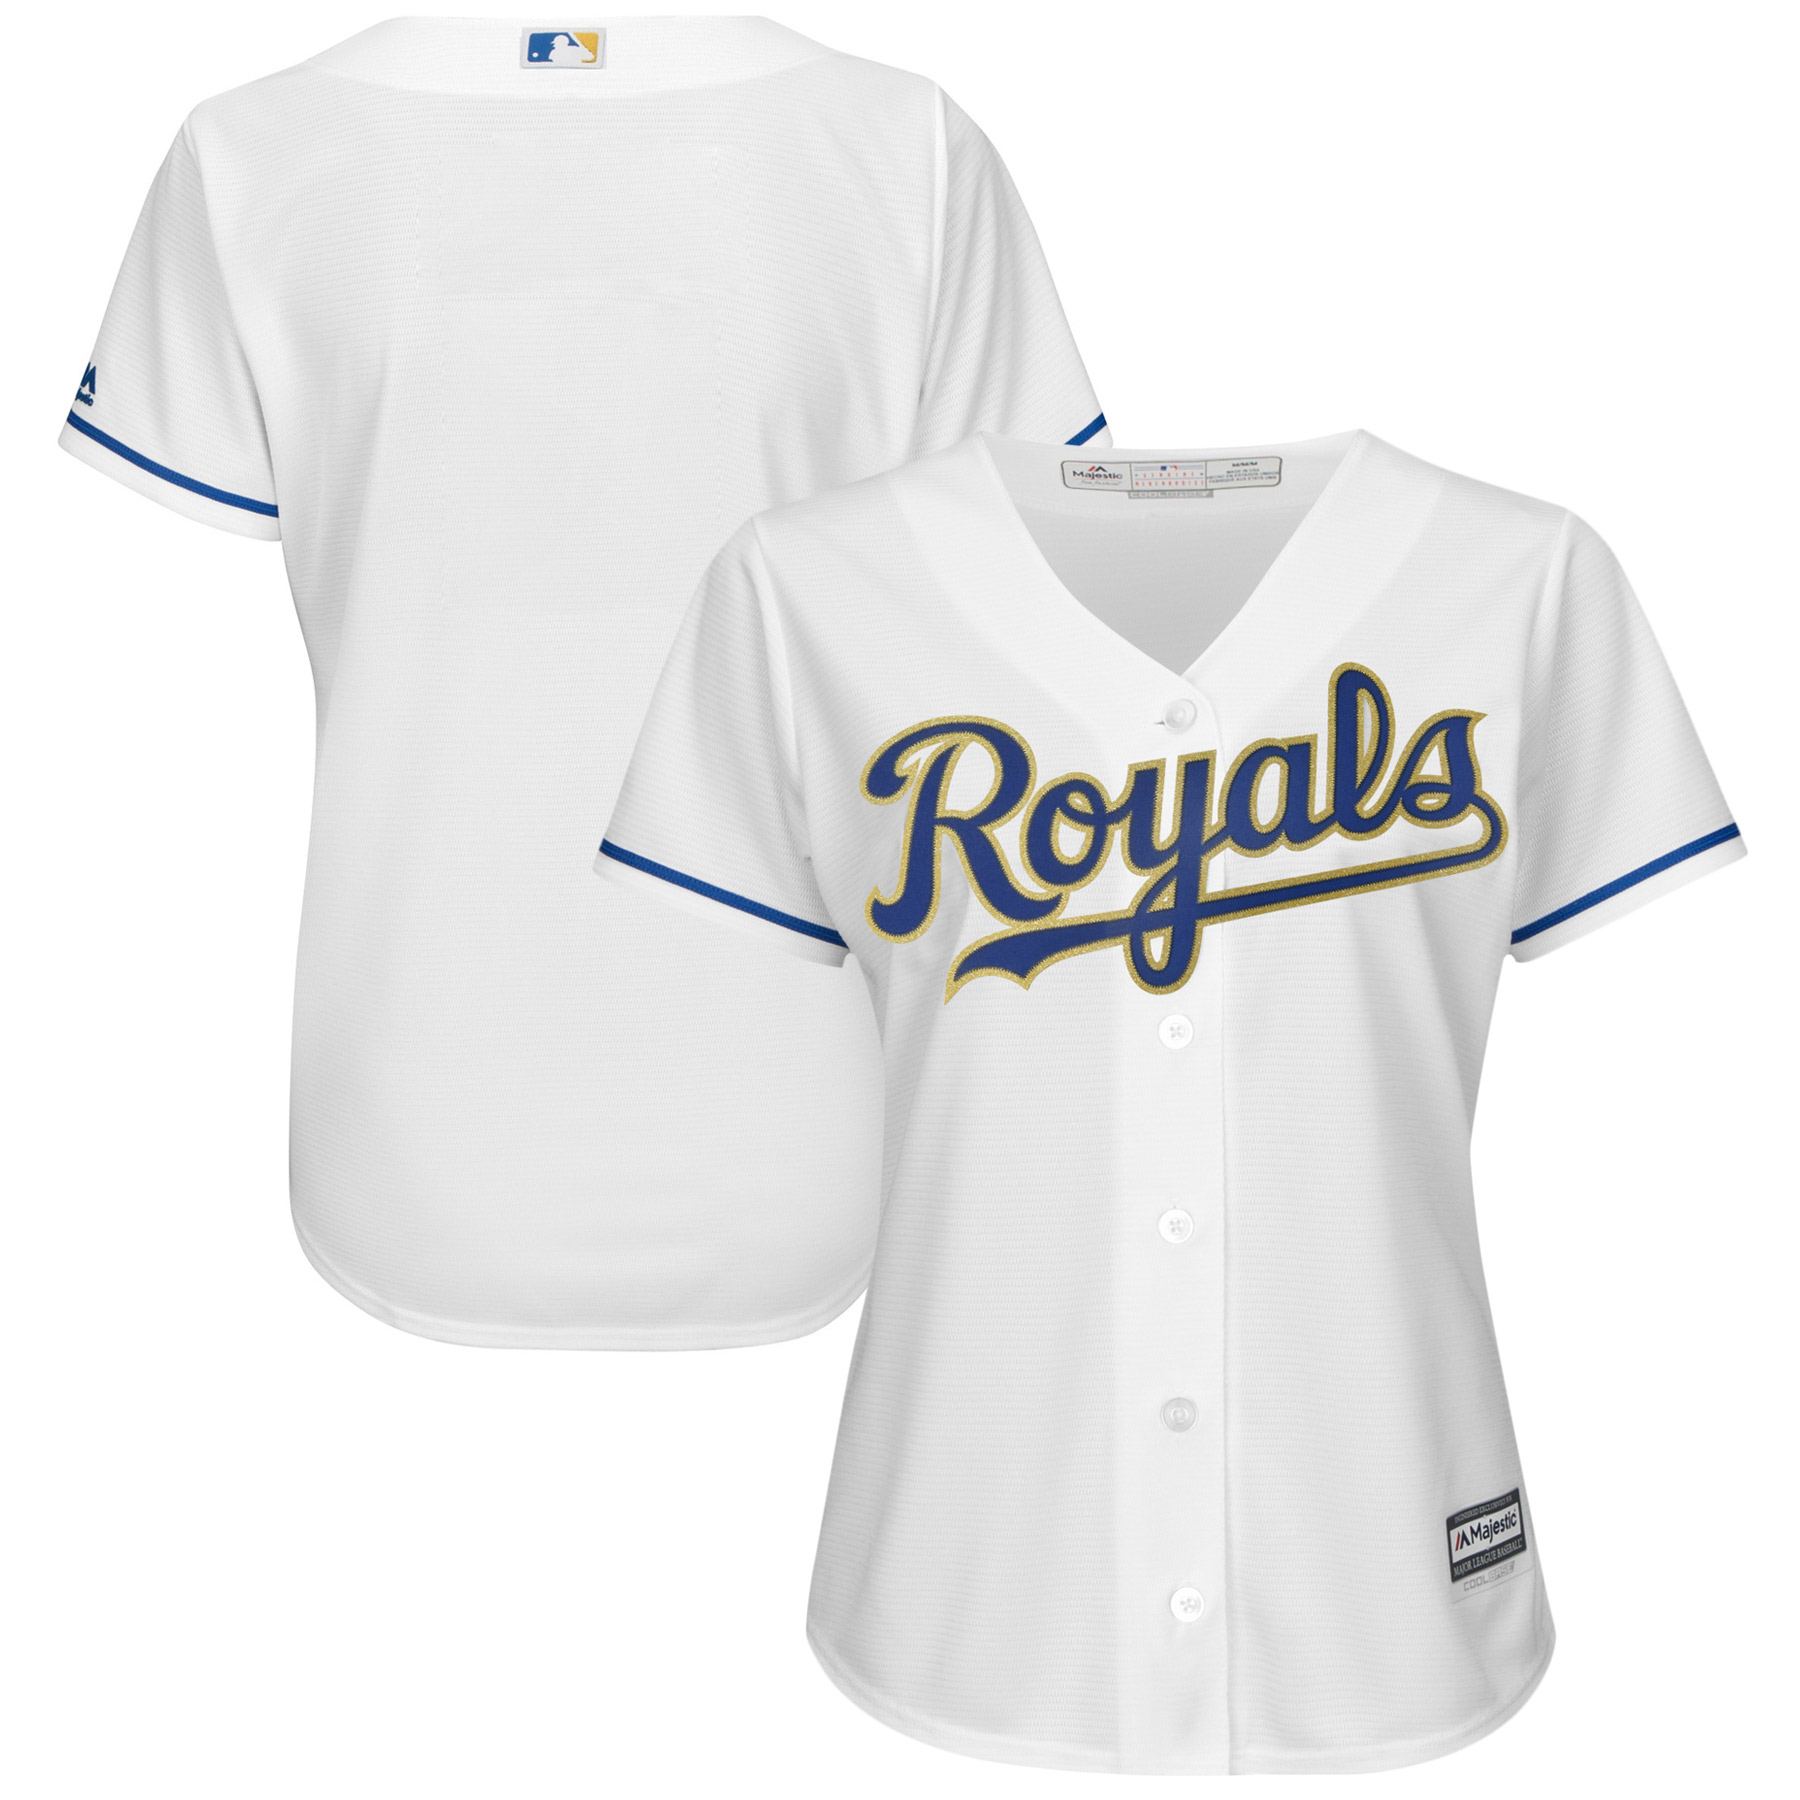 Kansas City Royals Majestic Women's 2017 Home Cool Base Replica Team Jersey White by MAJESTIC LSG